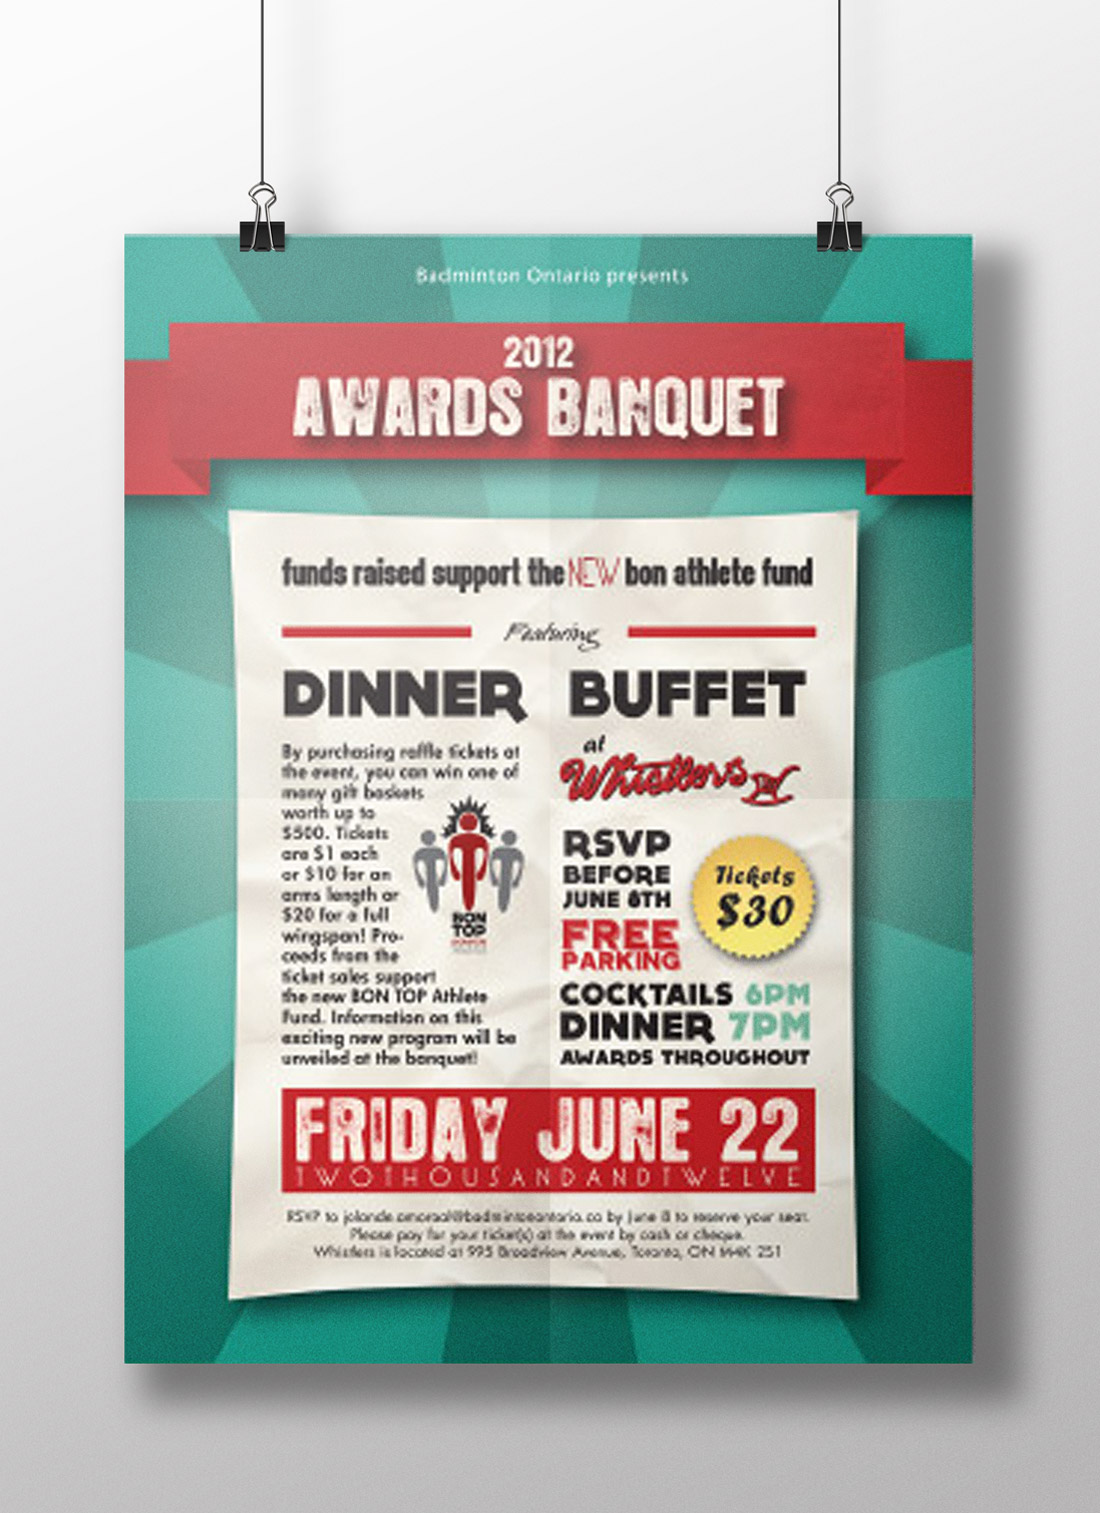 Awards-Banquet-poster.jpg